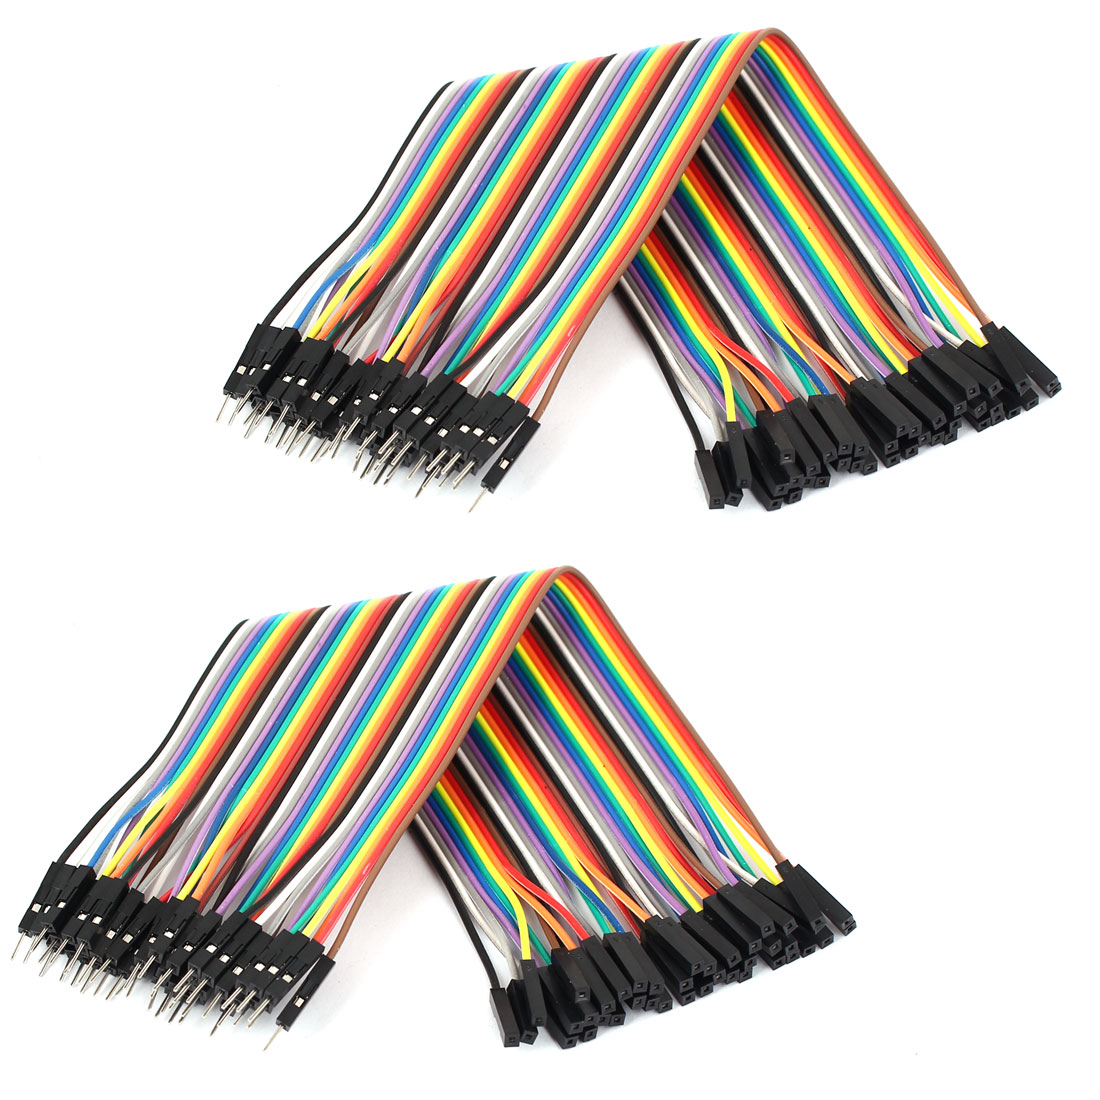 0.66ft 40 Pin 40 Way M/F Connector IDC Flat Rainbow Ribbon Cable 2pcs